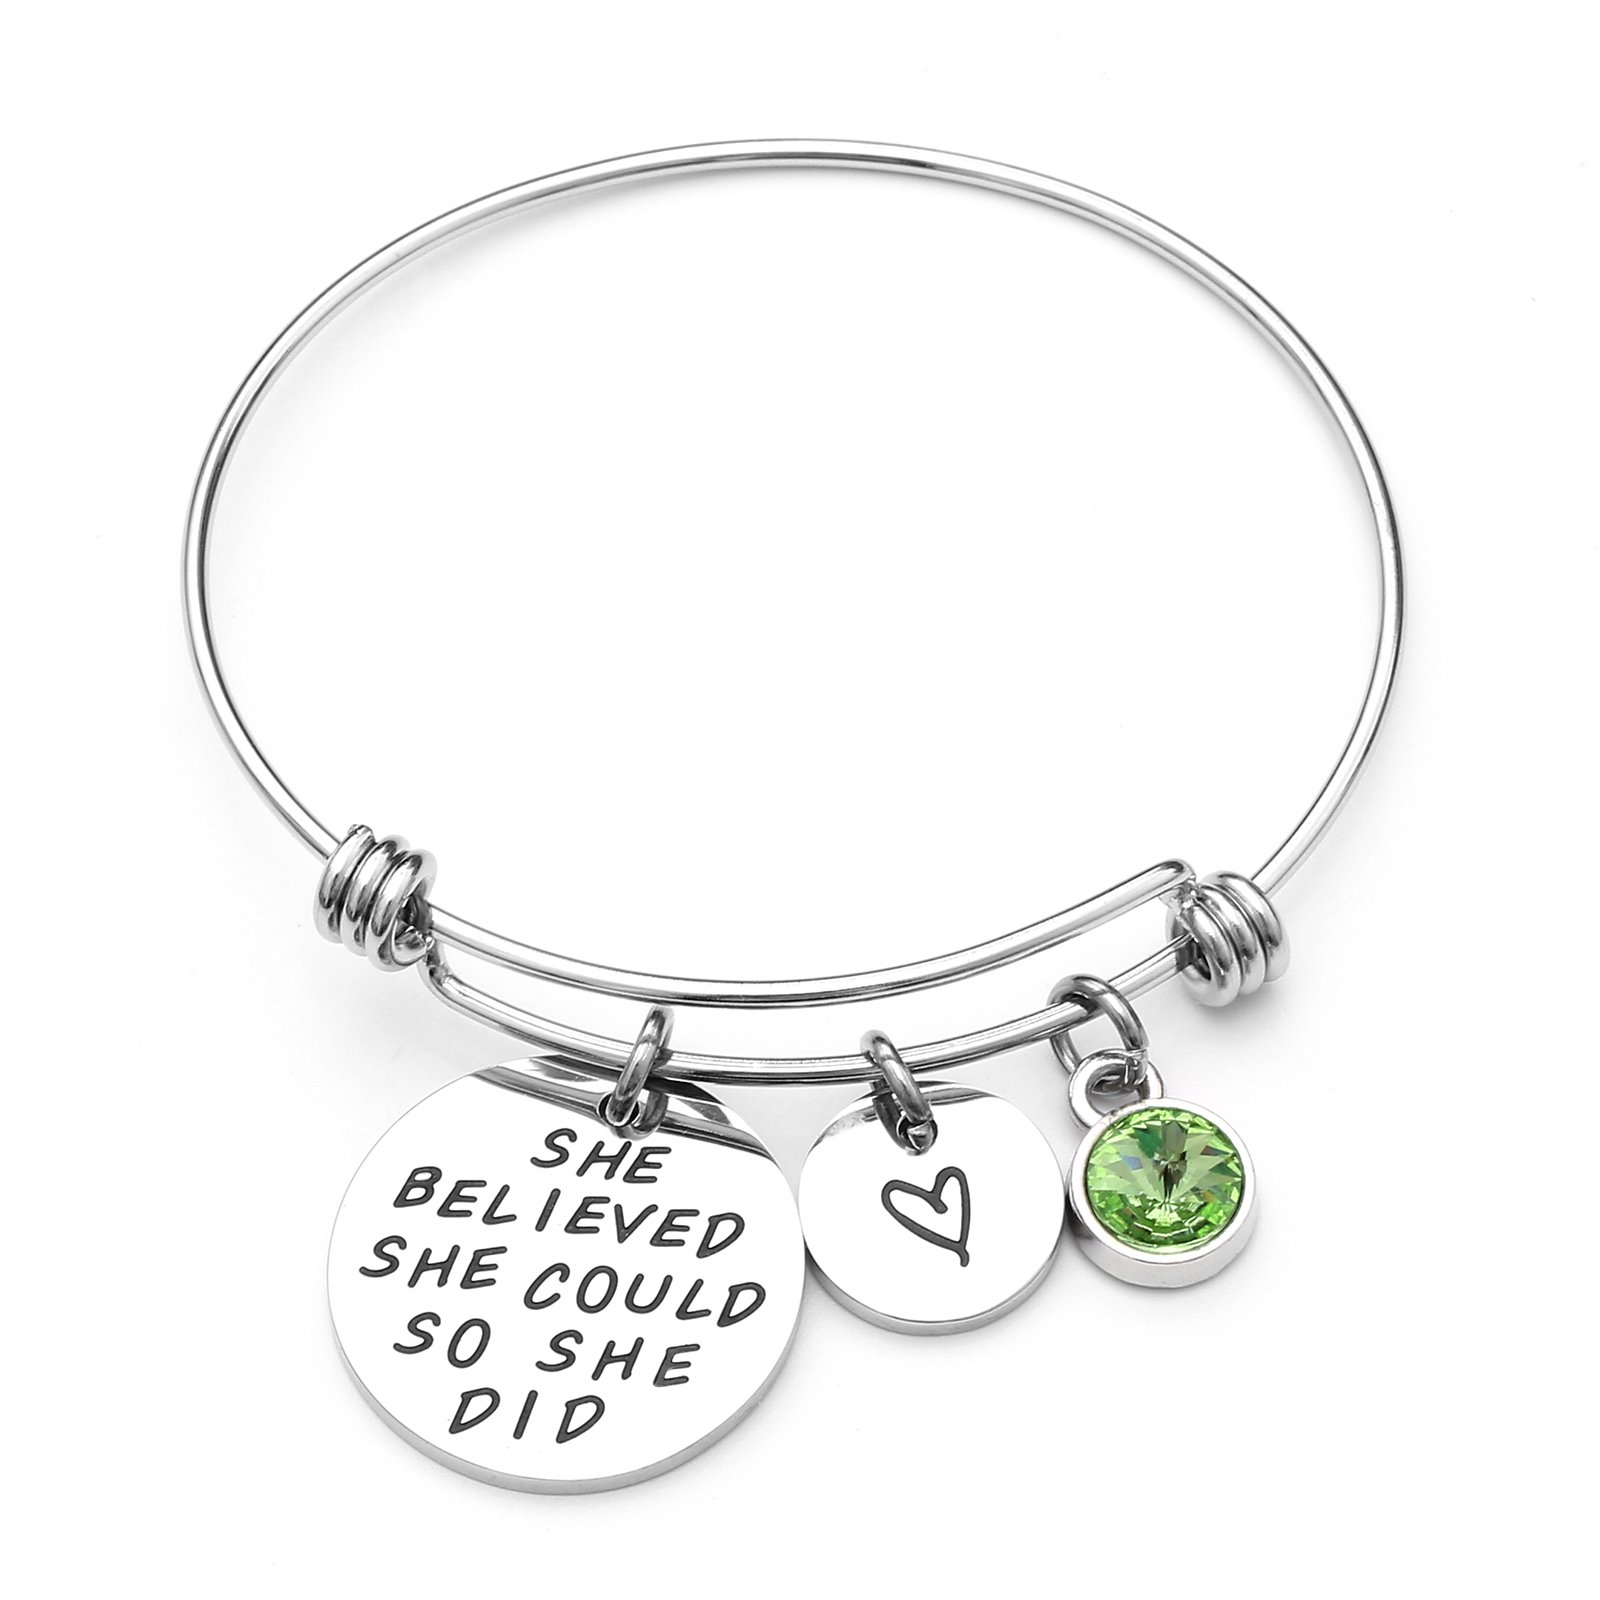 LIUANAN She belived she Could so she did Inspirational Bracelet Expandable Bangle Birthstone Stainless Steel Cuff (Peridot-Aug) ...